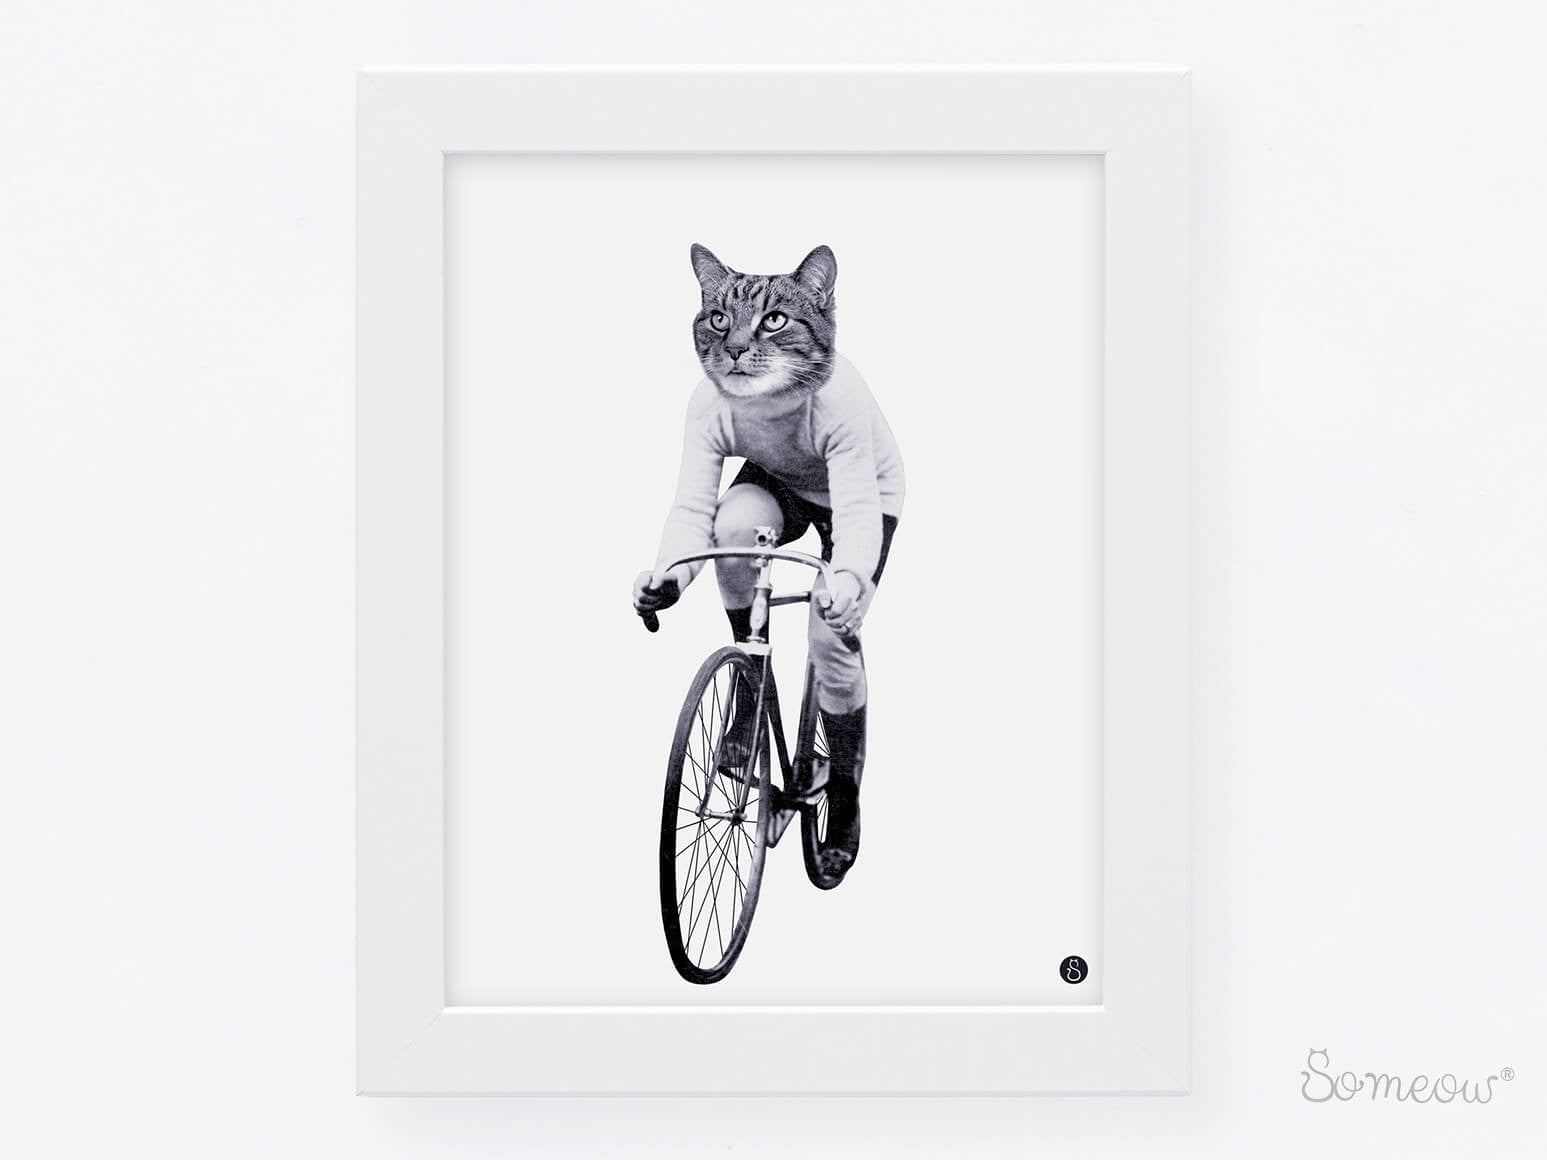 Cat on Bike – Affiche de chat à vélo en noir et blanc